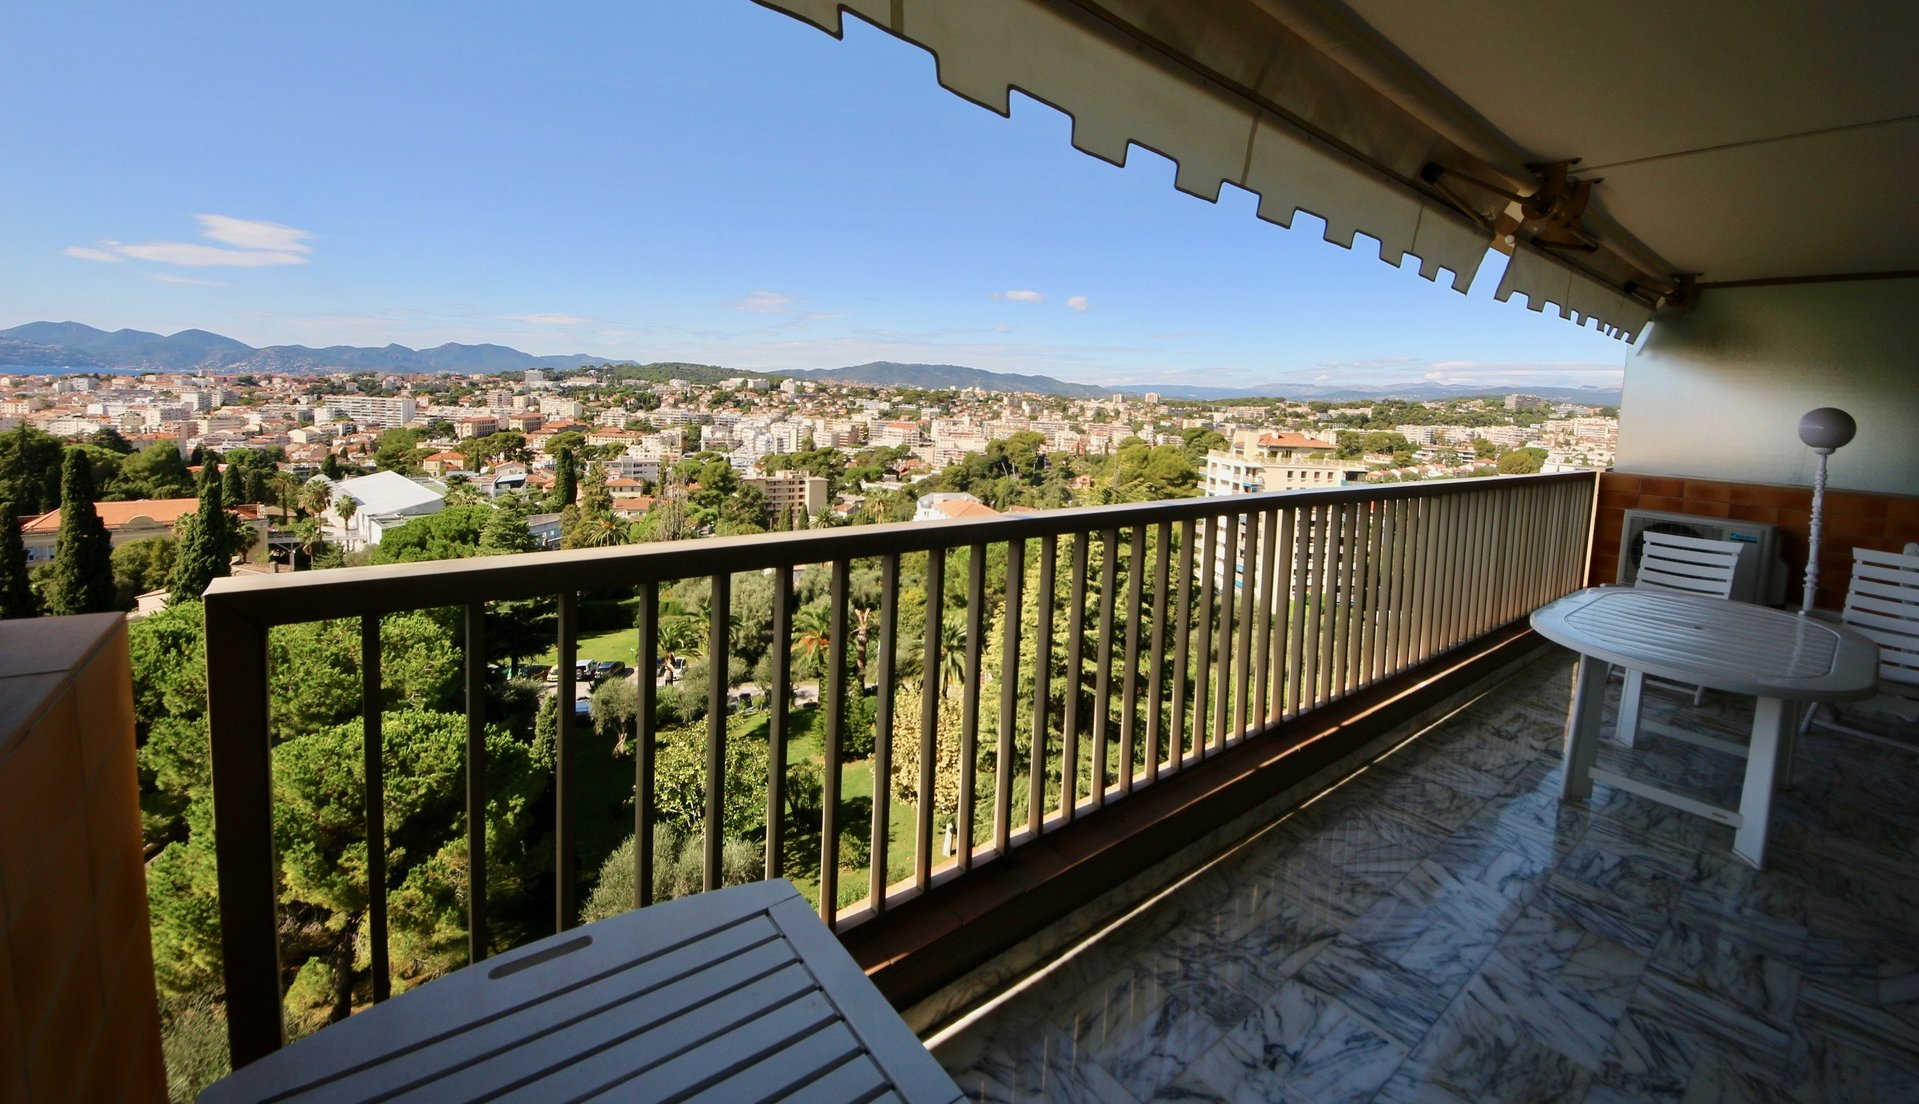 CANNES OXFORD 2 BEDROOM 90 SQM HIGH FLOOR PANORAMIC SEA VIEW